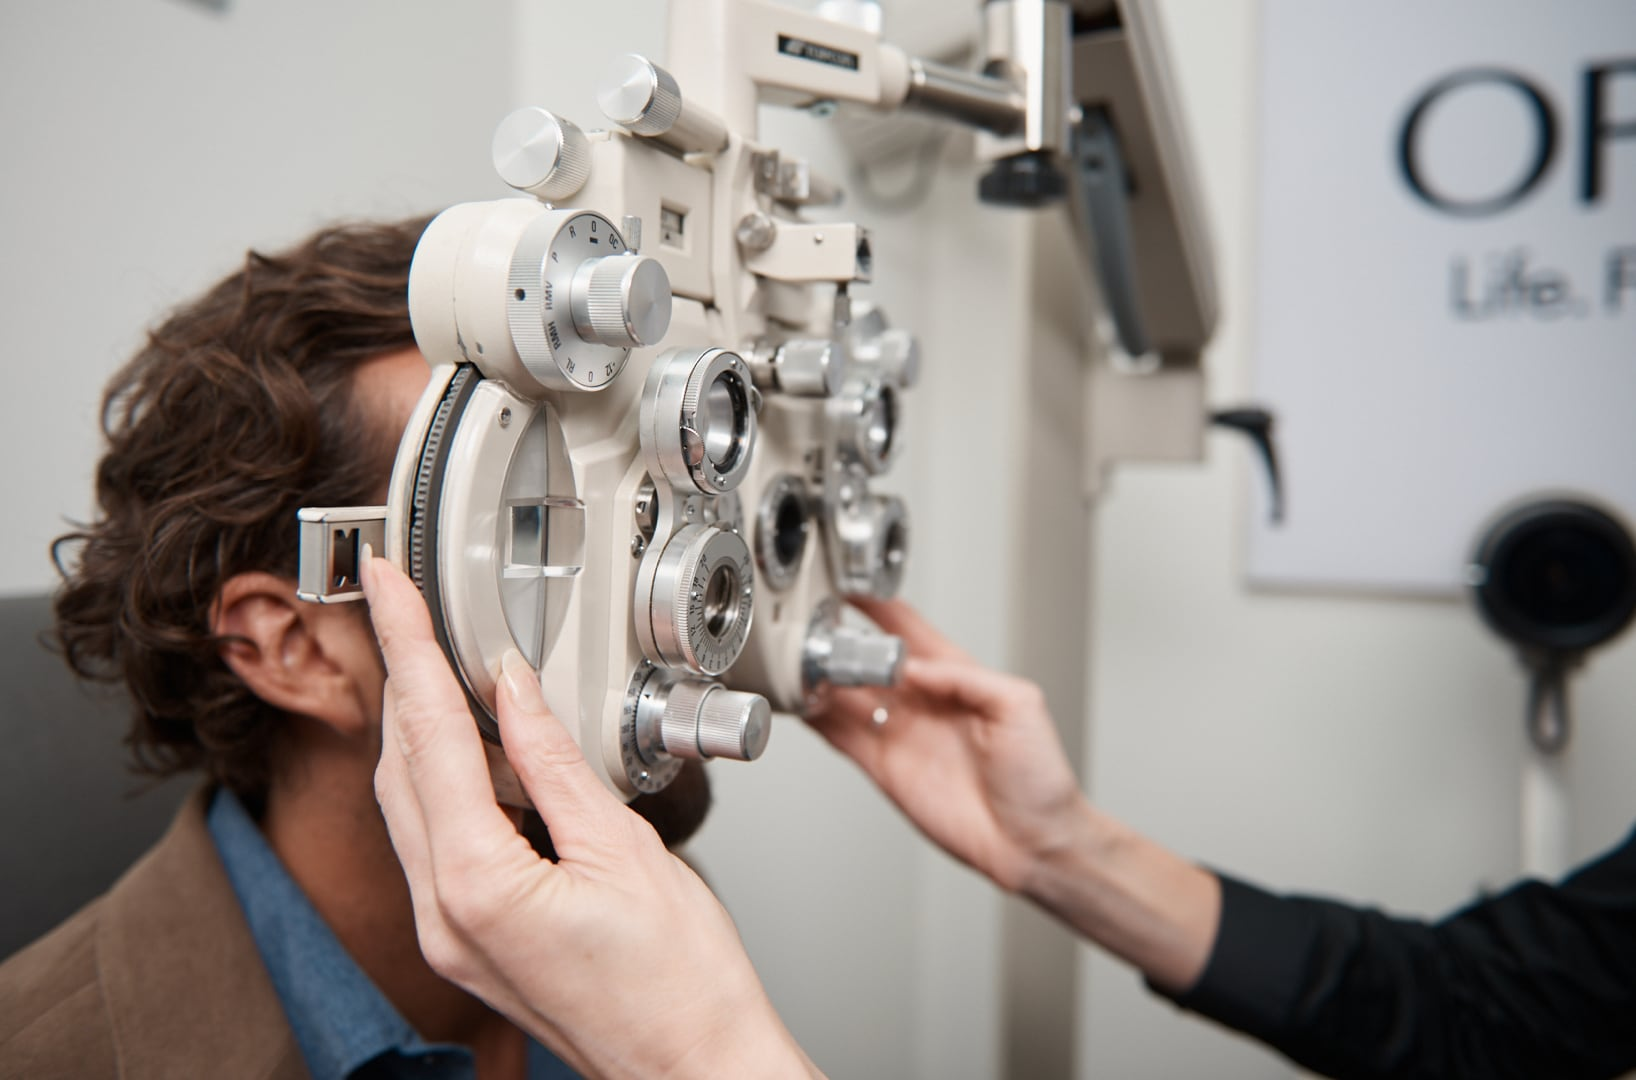 A patient during an eye examination